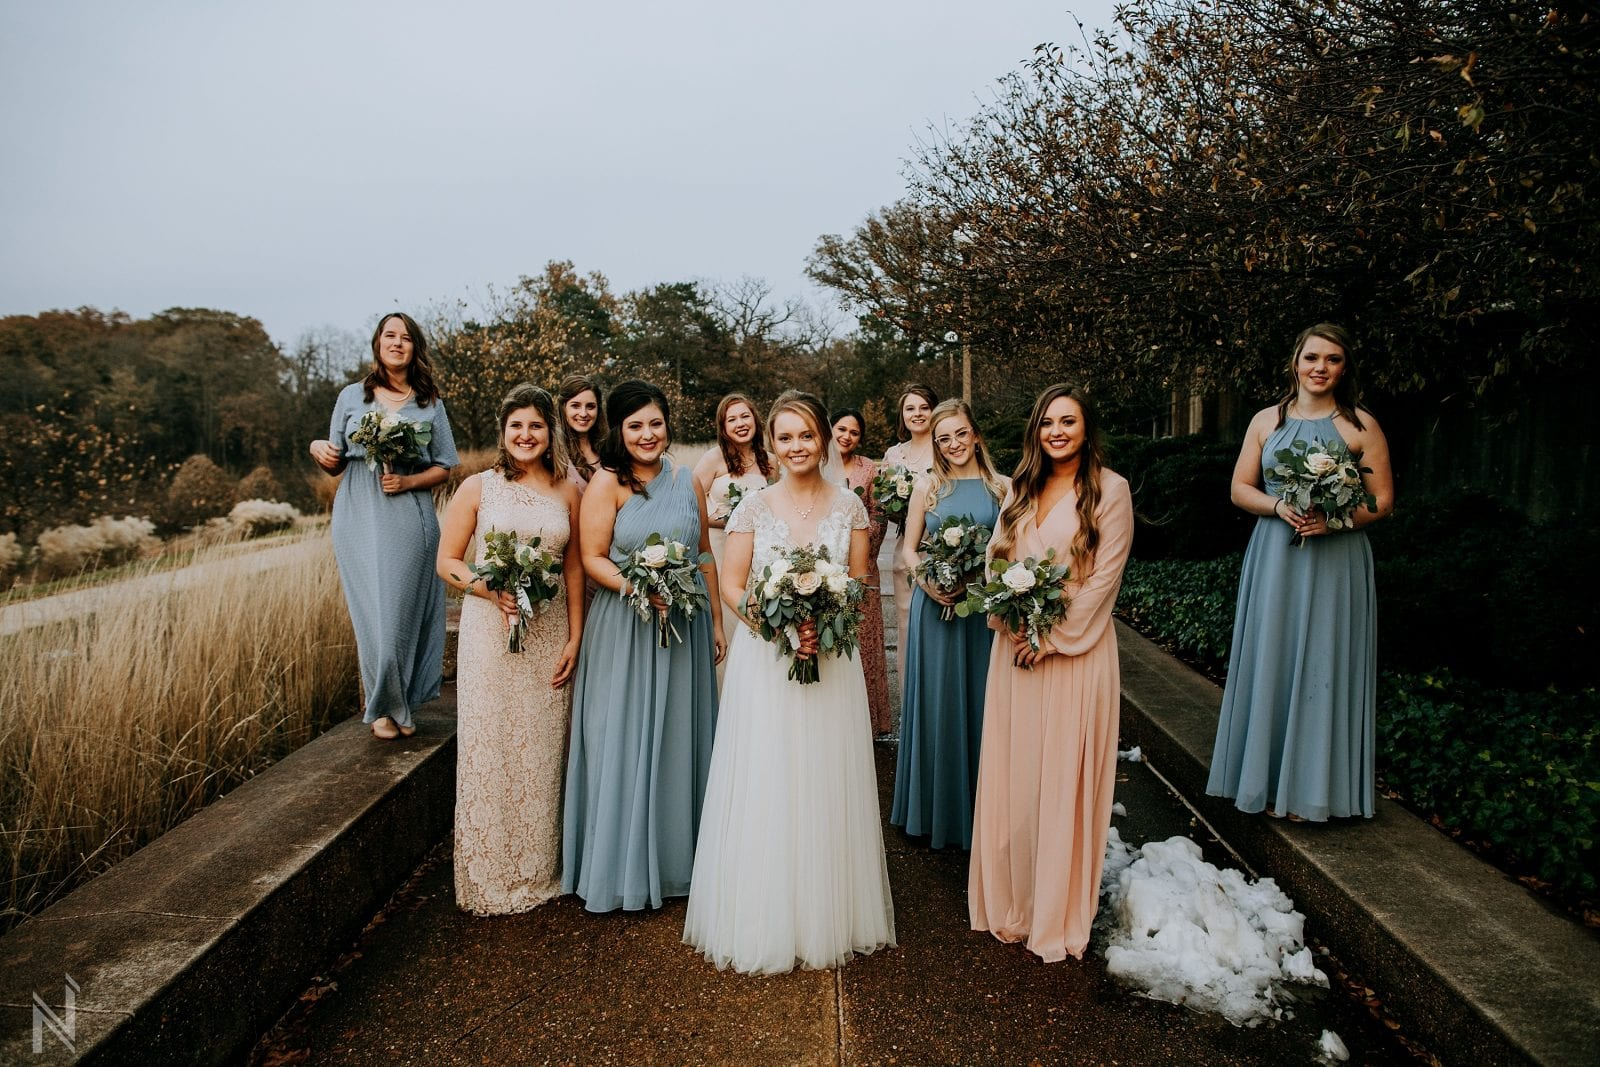 Wedding party with different colored bridesmaid dresses at worlds fair pavilion in Forest Park in St. Louis, Missouri